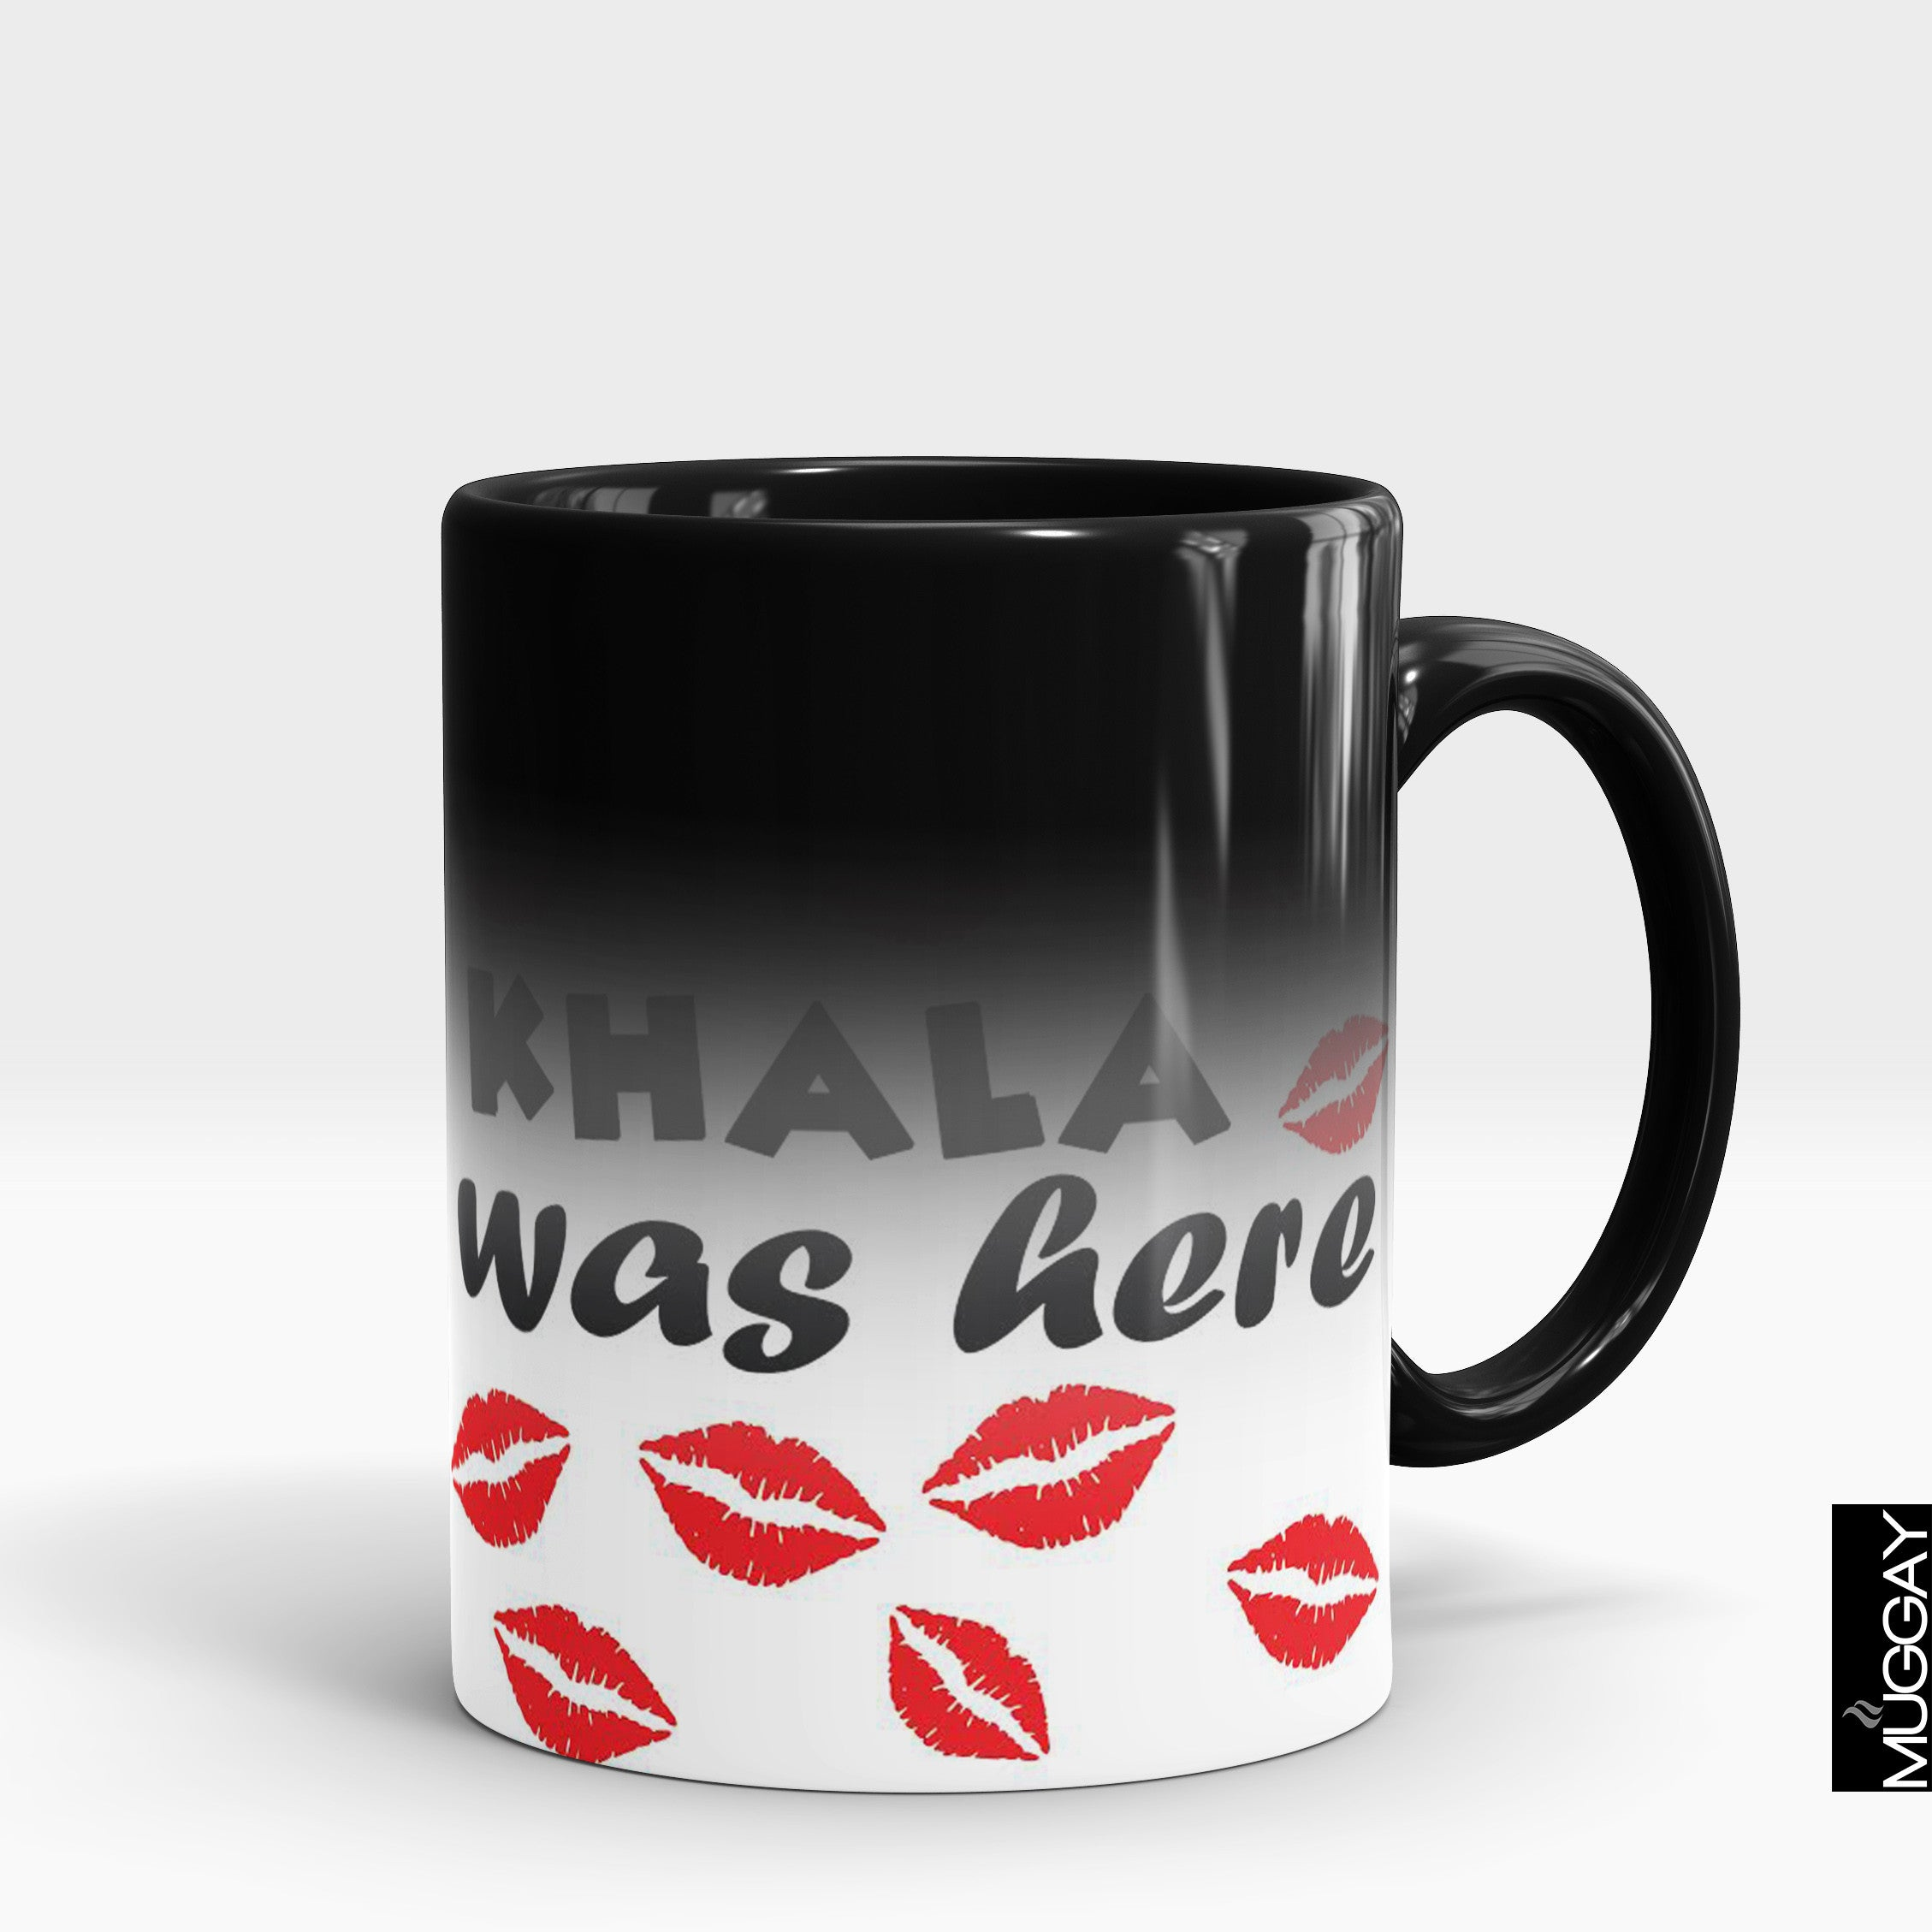 Baby Mug - baby4 - Muggay.com - Mugs - Printing shop - truck Art mugs - Mug printing - Customized printing - Digital printing - Muggay